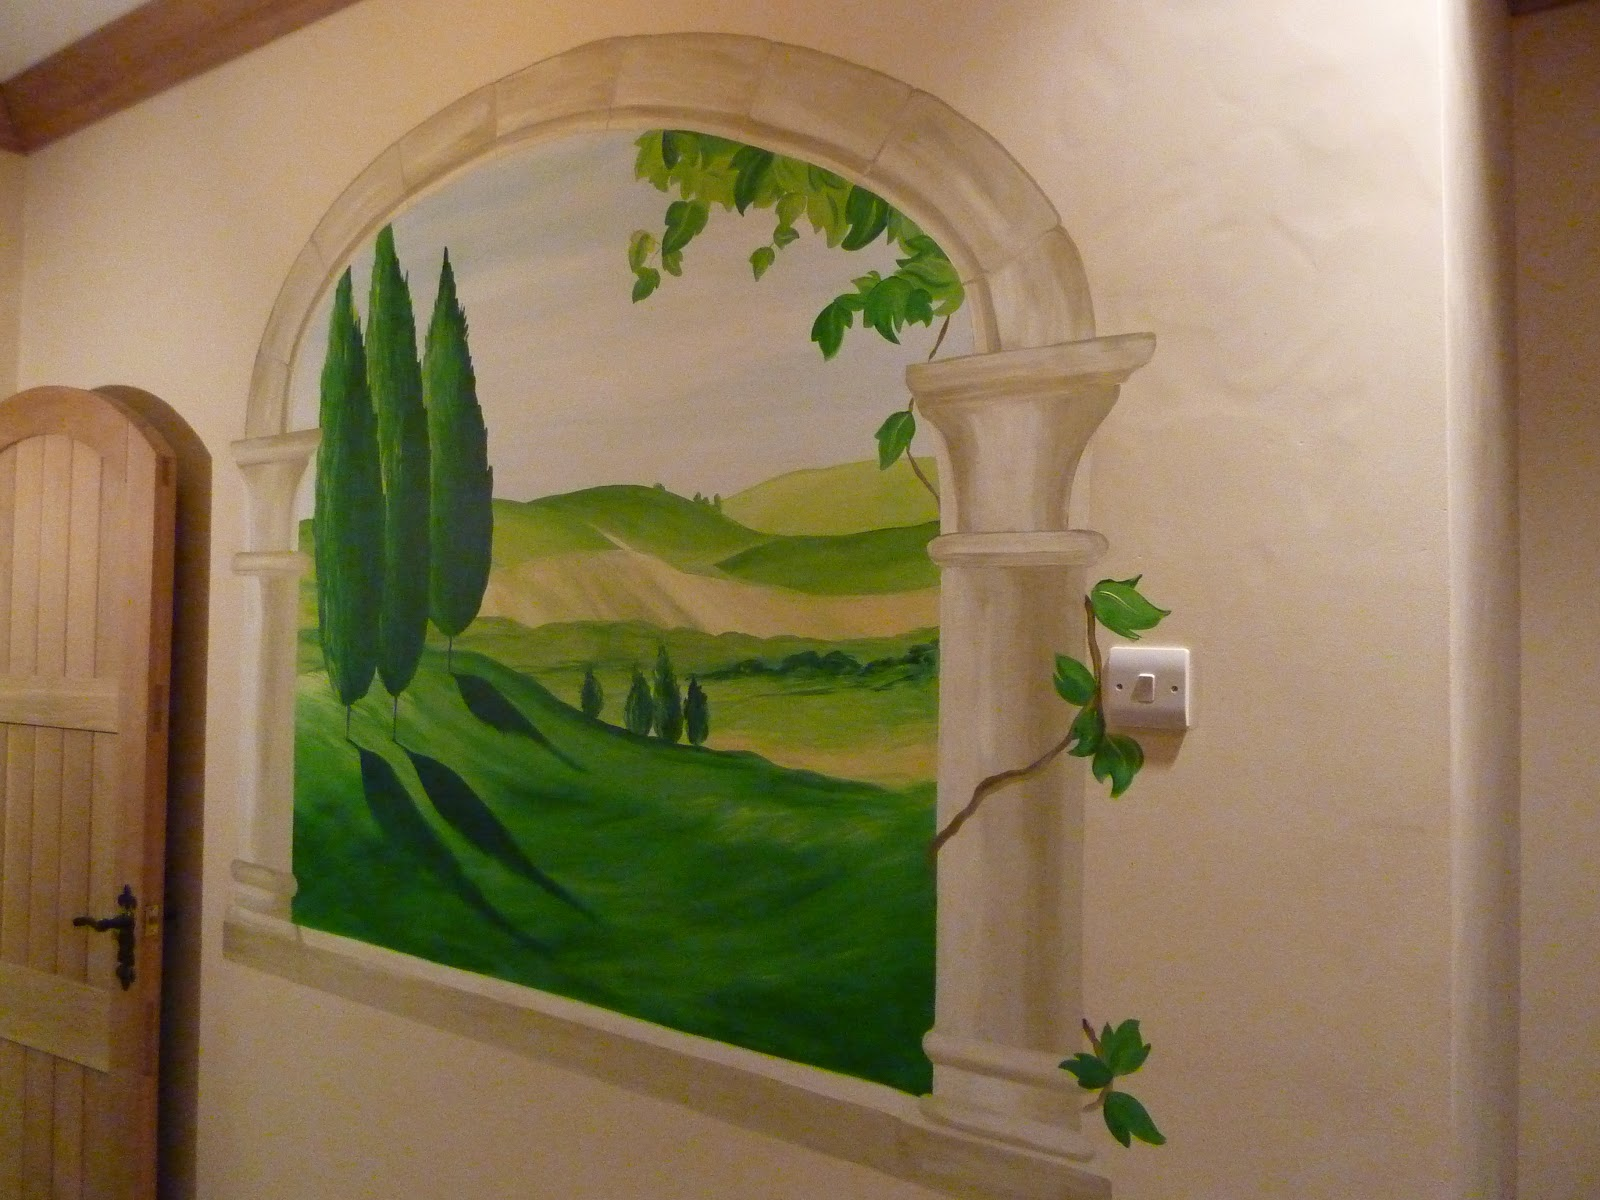 joanna perry top mural artist hand painting murals across the hand painted tuscany vista feature wall mural south wales